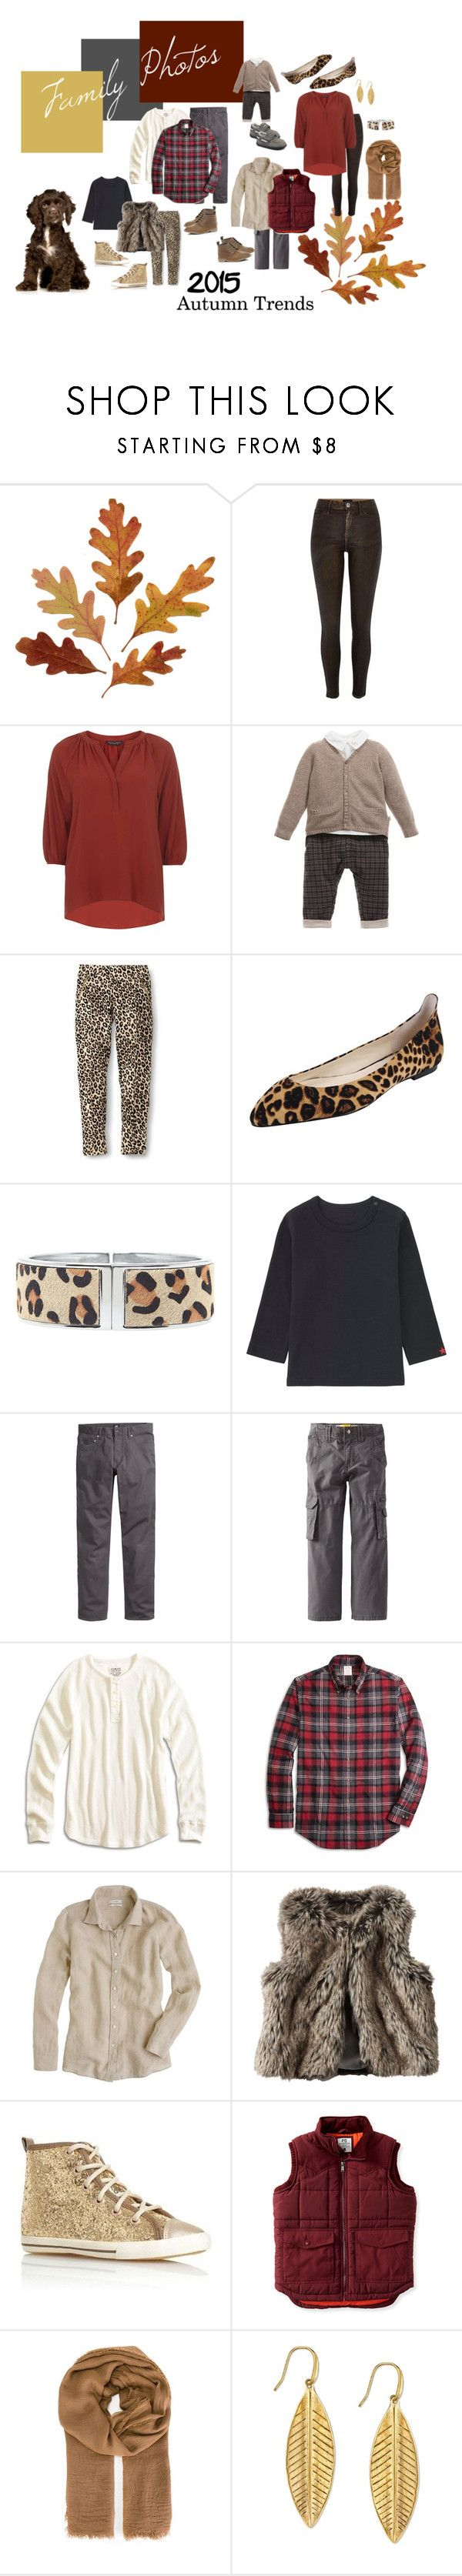 """""""2015 Autumn Family Photo Trends"""" by andreahurley ❤ liked on Polyvore featuring River Island, Dorothy Perkins, Bettye Muller, Lane Bryant, Uniqlo, H&M, Lucky Brand, Brooks Brothers, J.Crew and Carter's"""